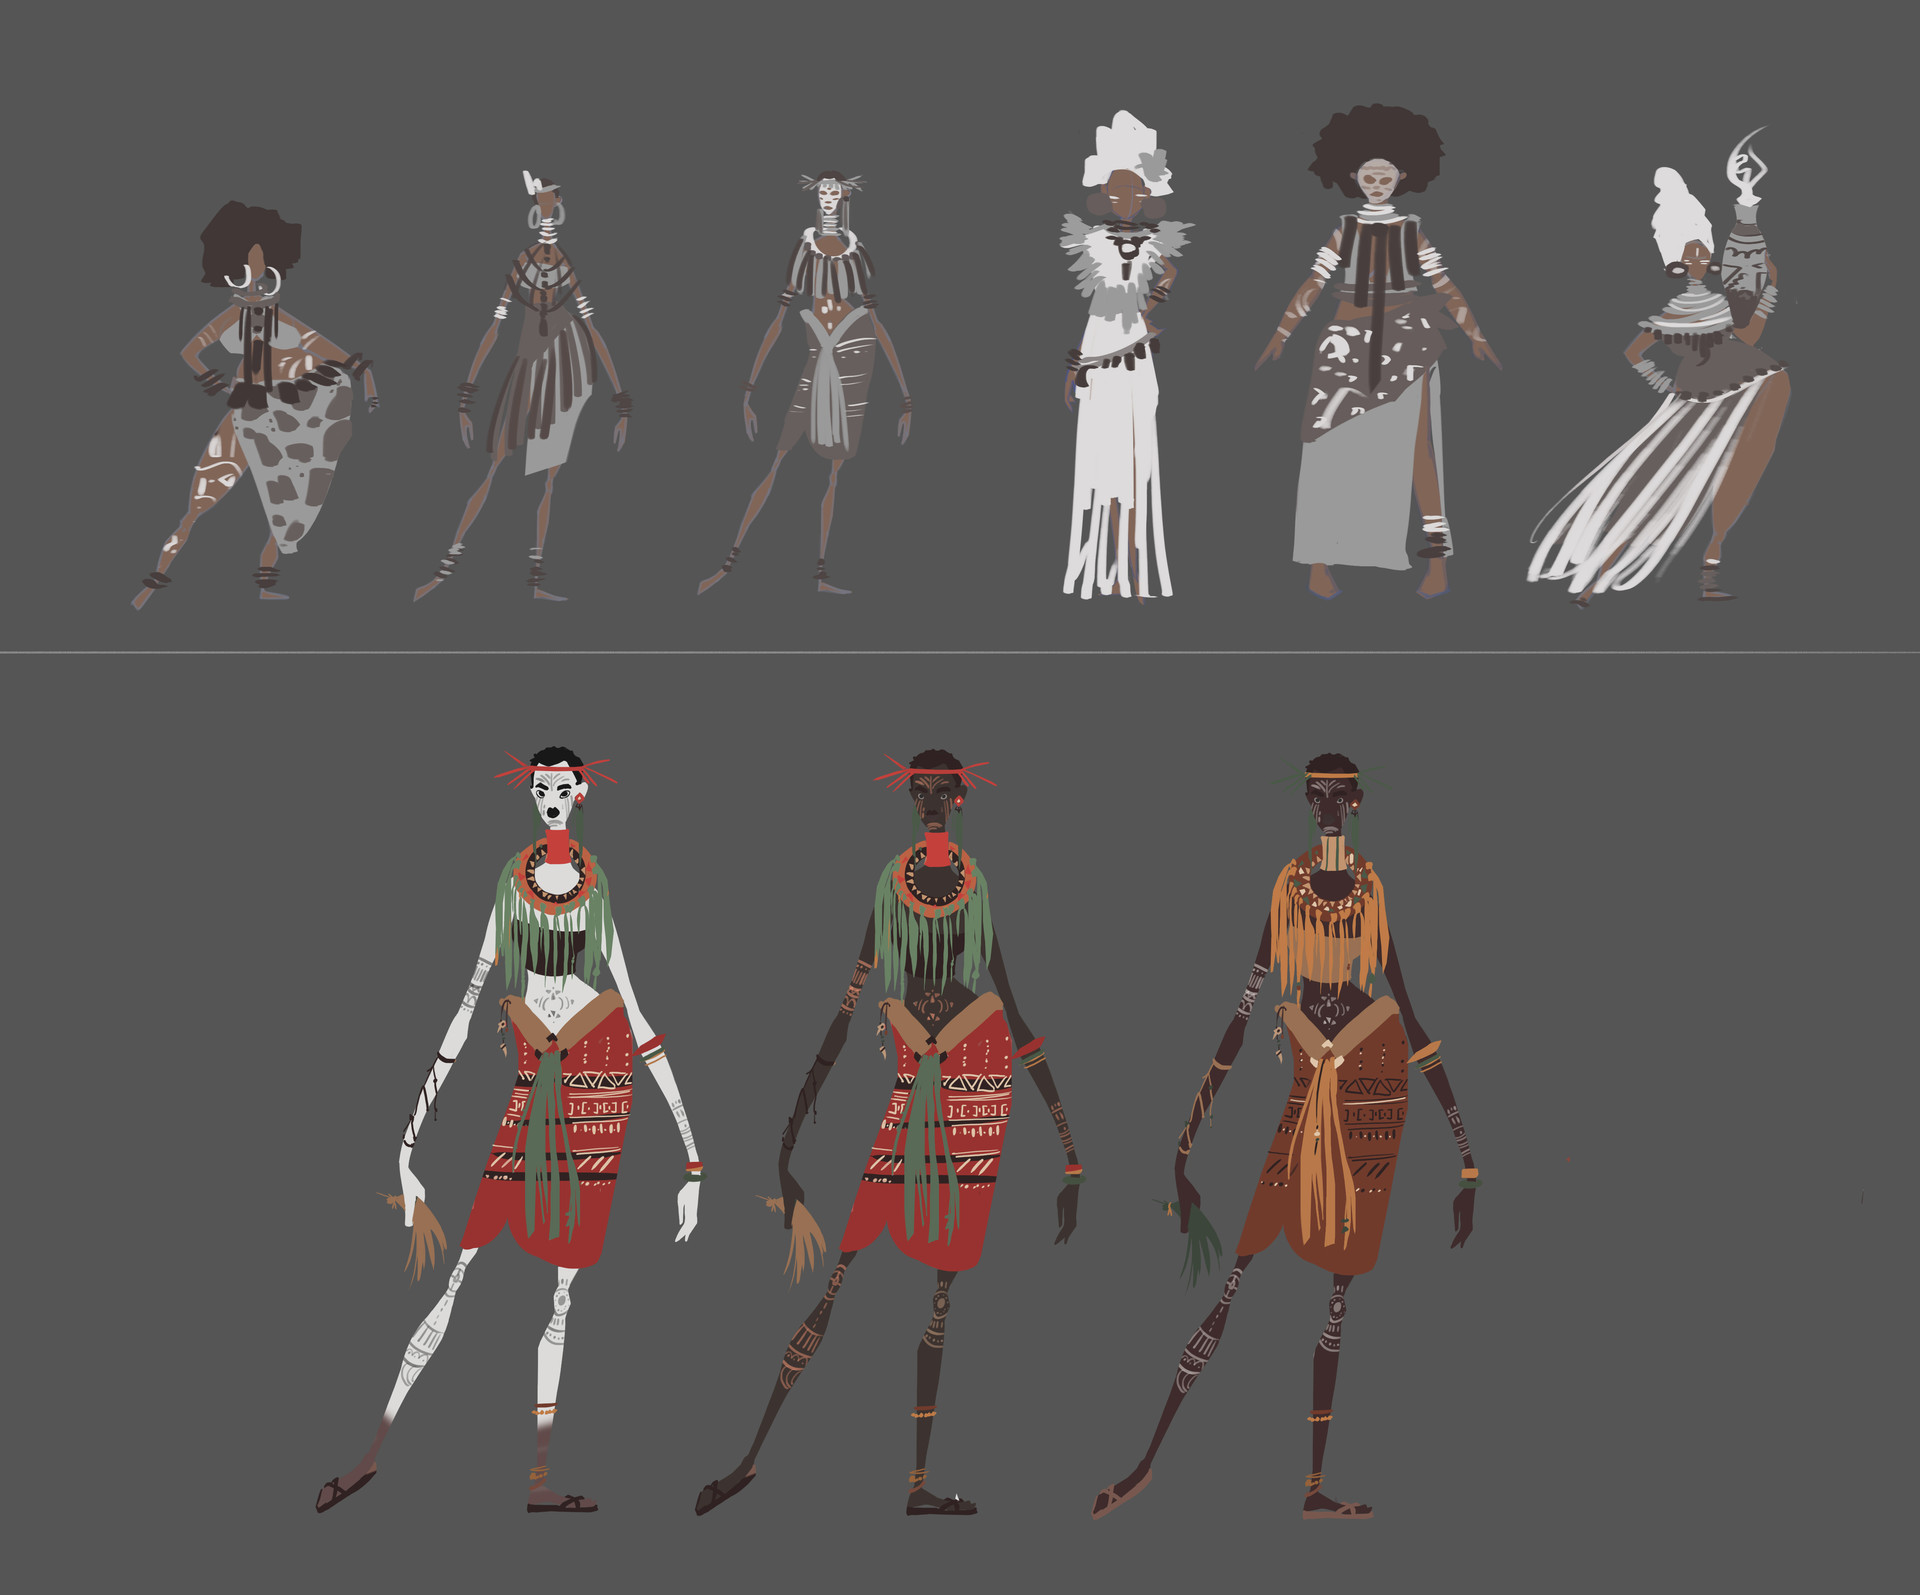 Stages of character development. Search for shapes and colors